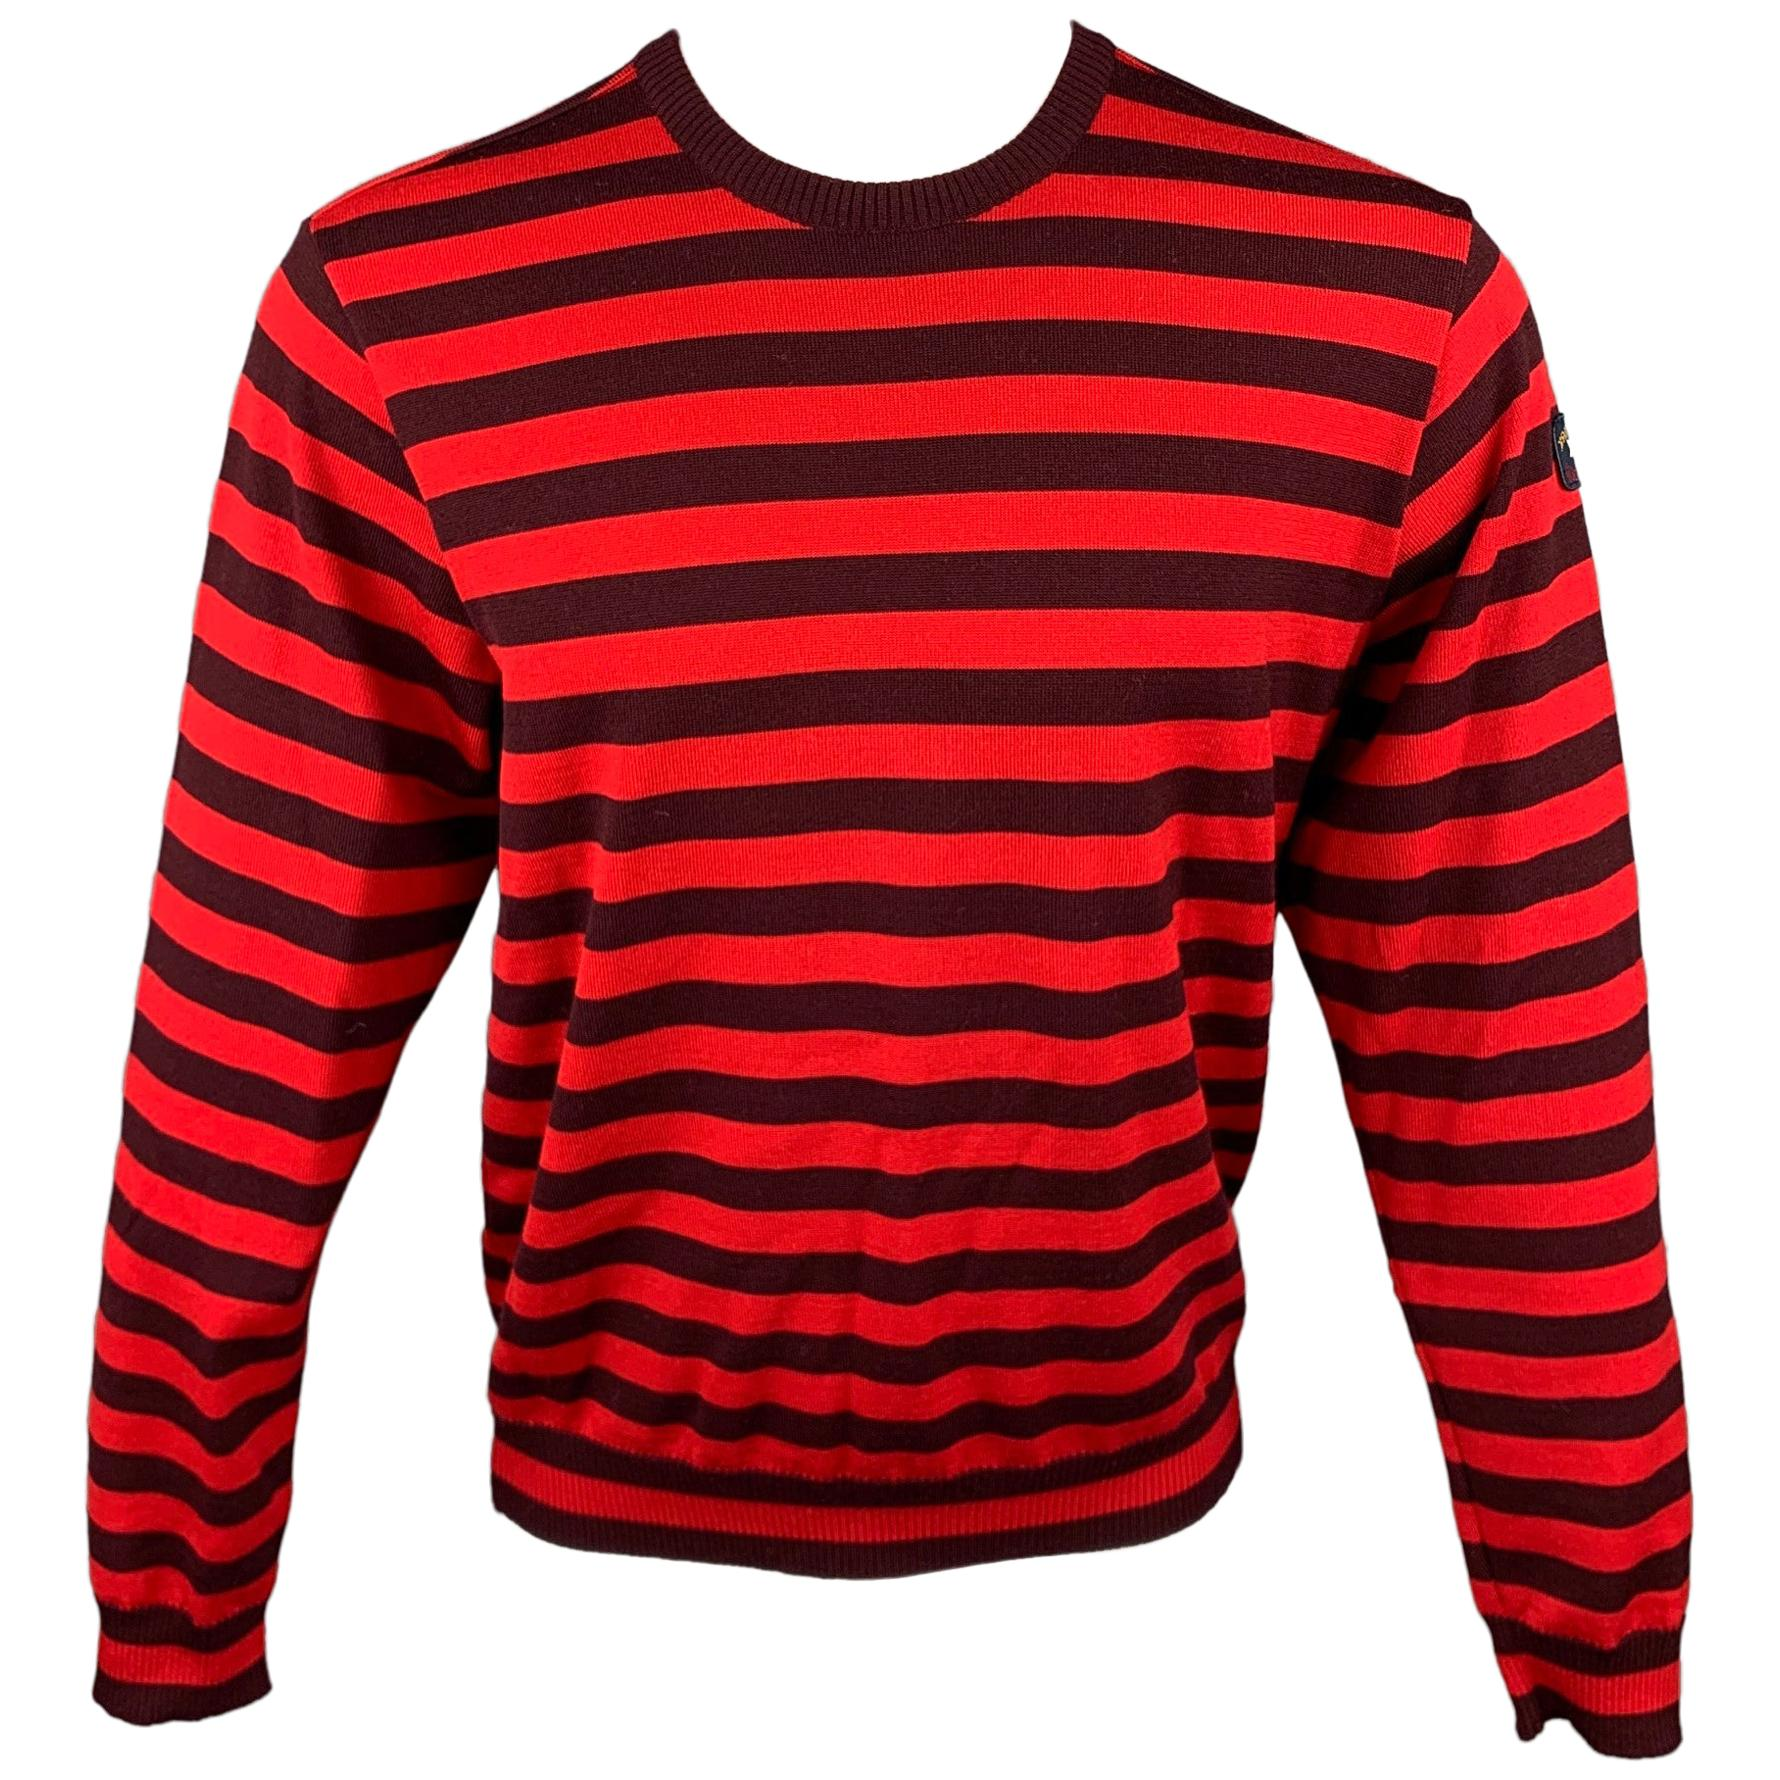 NICK WOOSTER x PAUL SHARK Size M Red & Brown Stripe Wool Crew-Neck Sweater